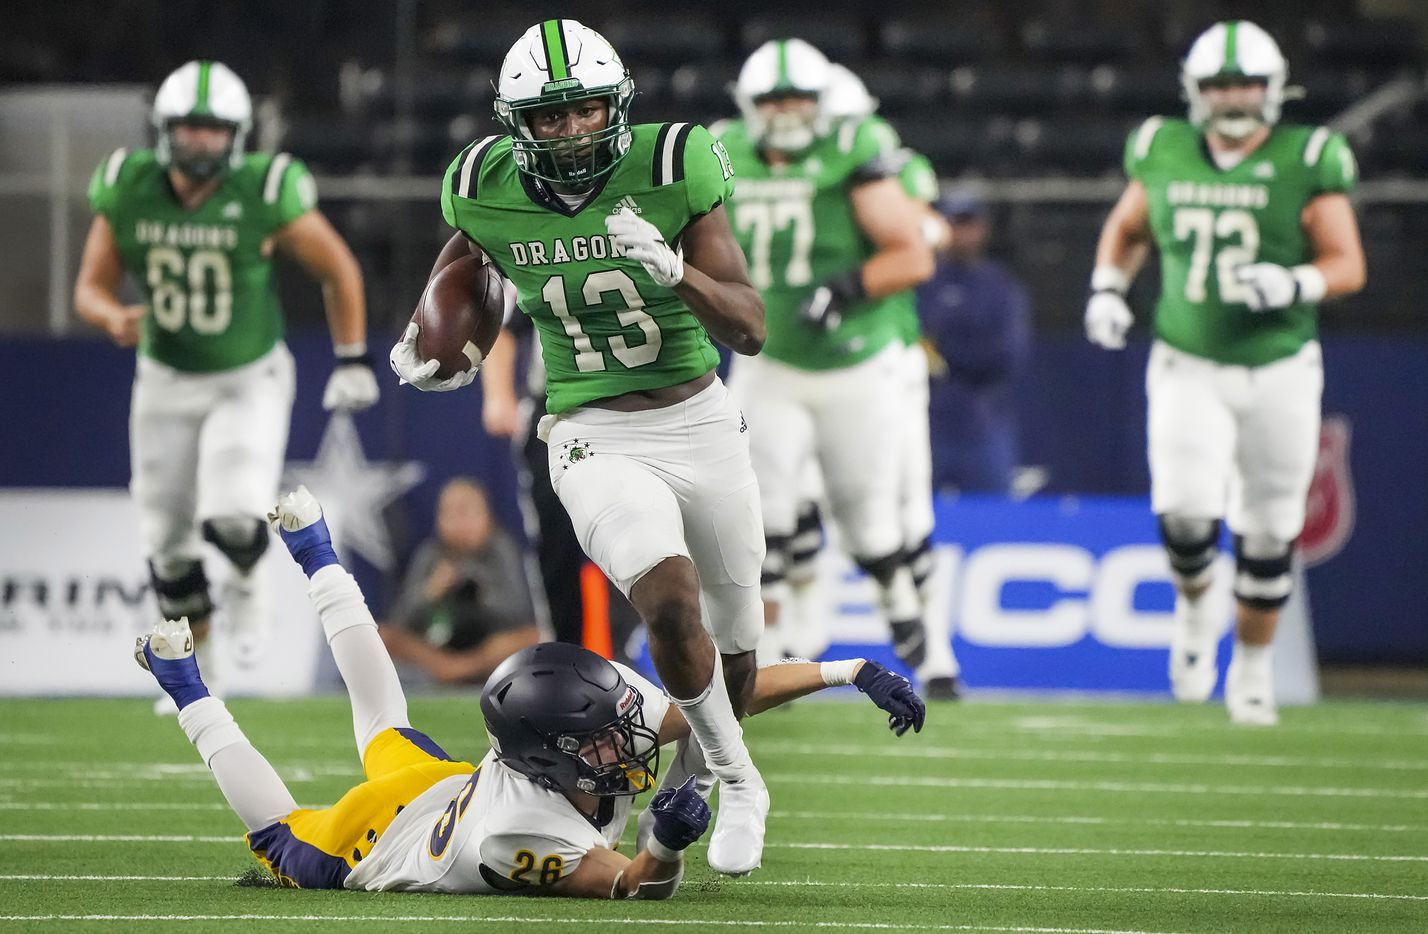 Southlake Carroll wide receiver RJ Maryland (13) is tripped up by Highland Park defensive back J.T. Withers (26) during the first half of a high school football game at AT&T Stadium on Thursday, Aug. 26, 2021, in Arlington.